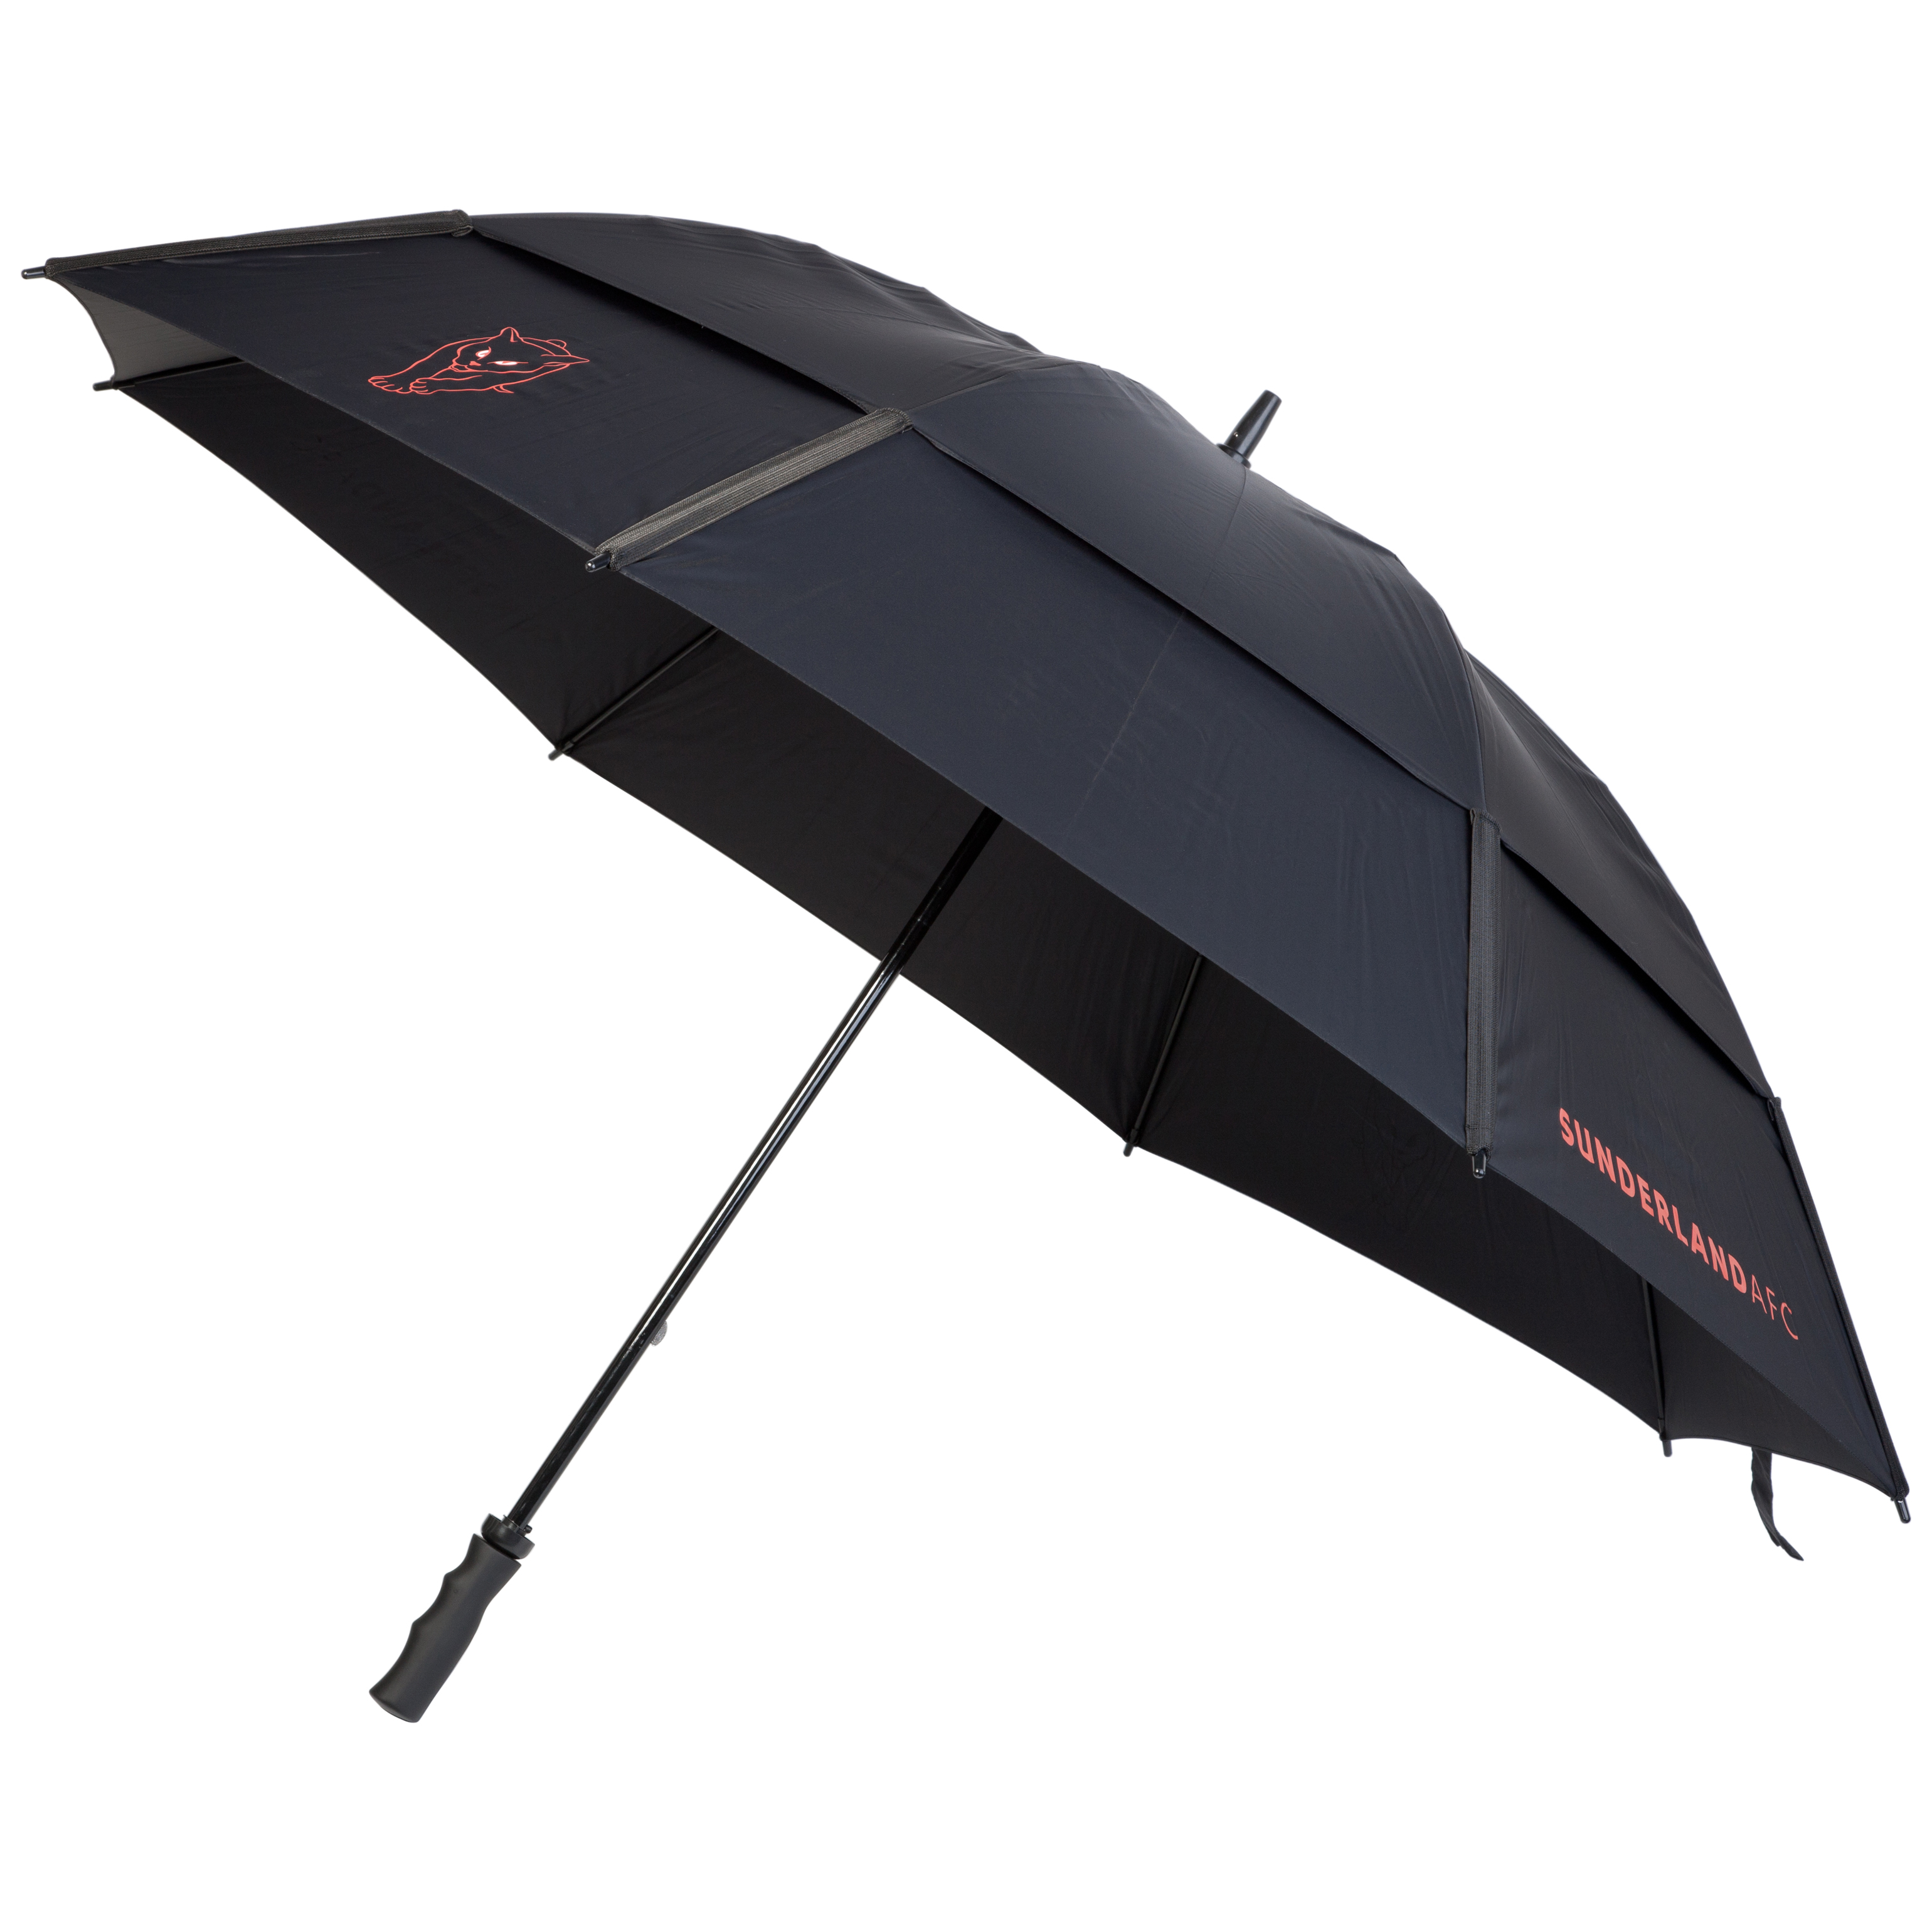 Sunderland Executive Double Canopy Windproof Golf Umbrella